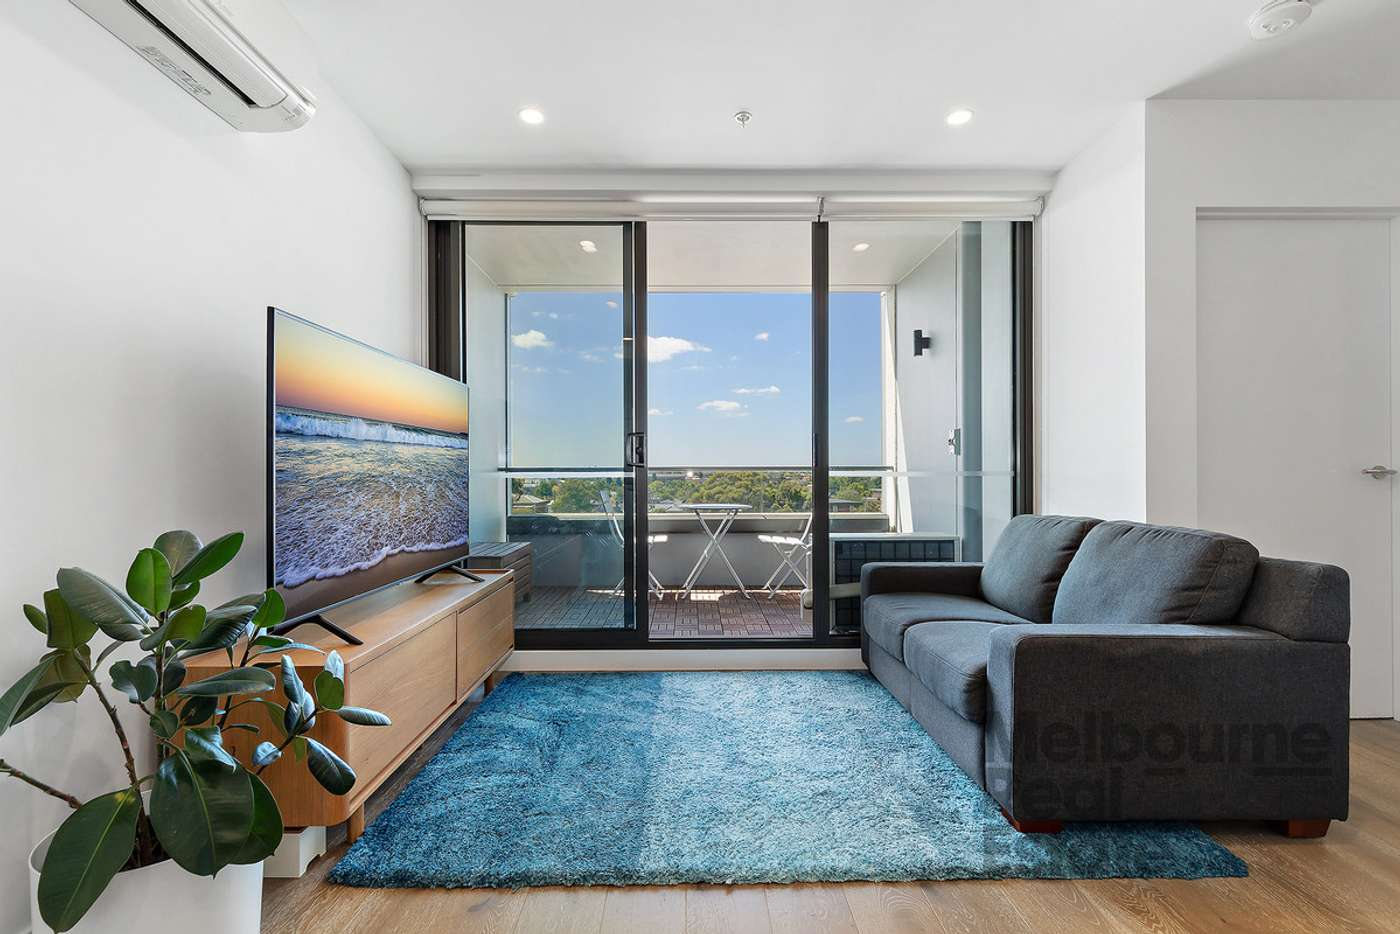 Main view of Homely apartment listing, 412/51 Homer Street, Moonee Ponds VIC 3039